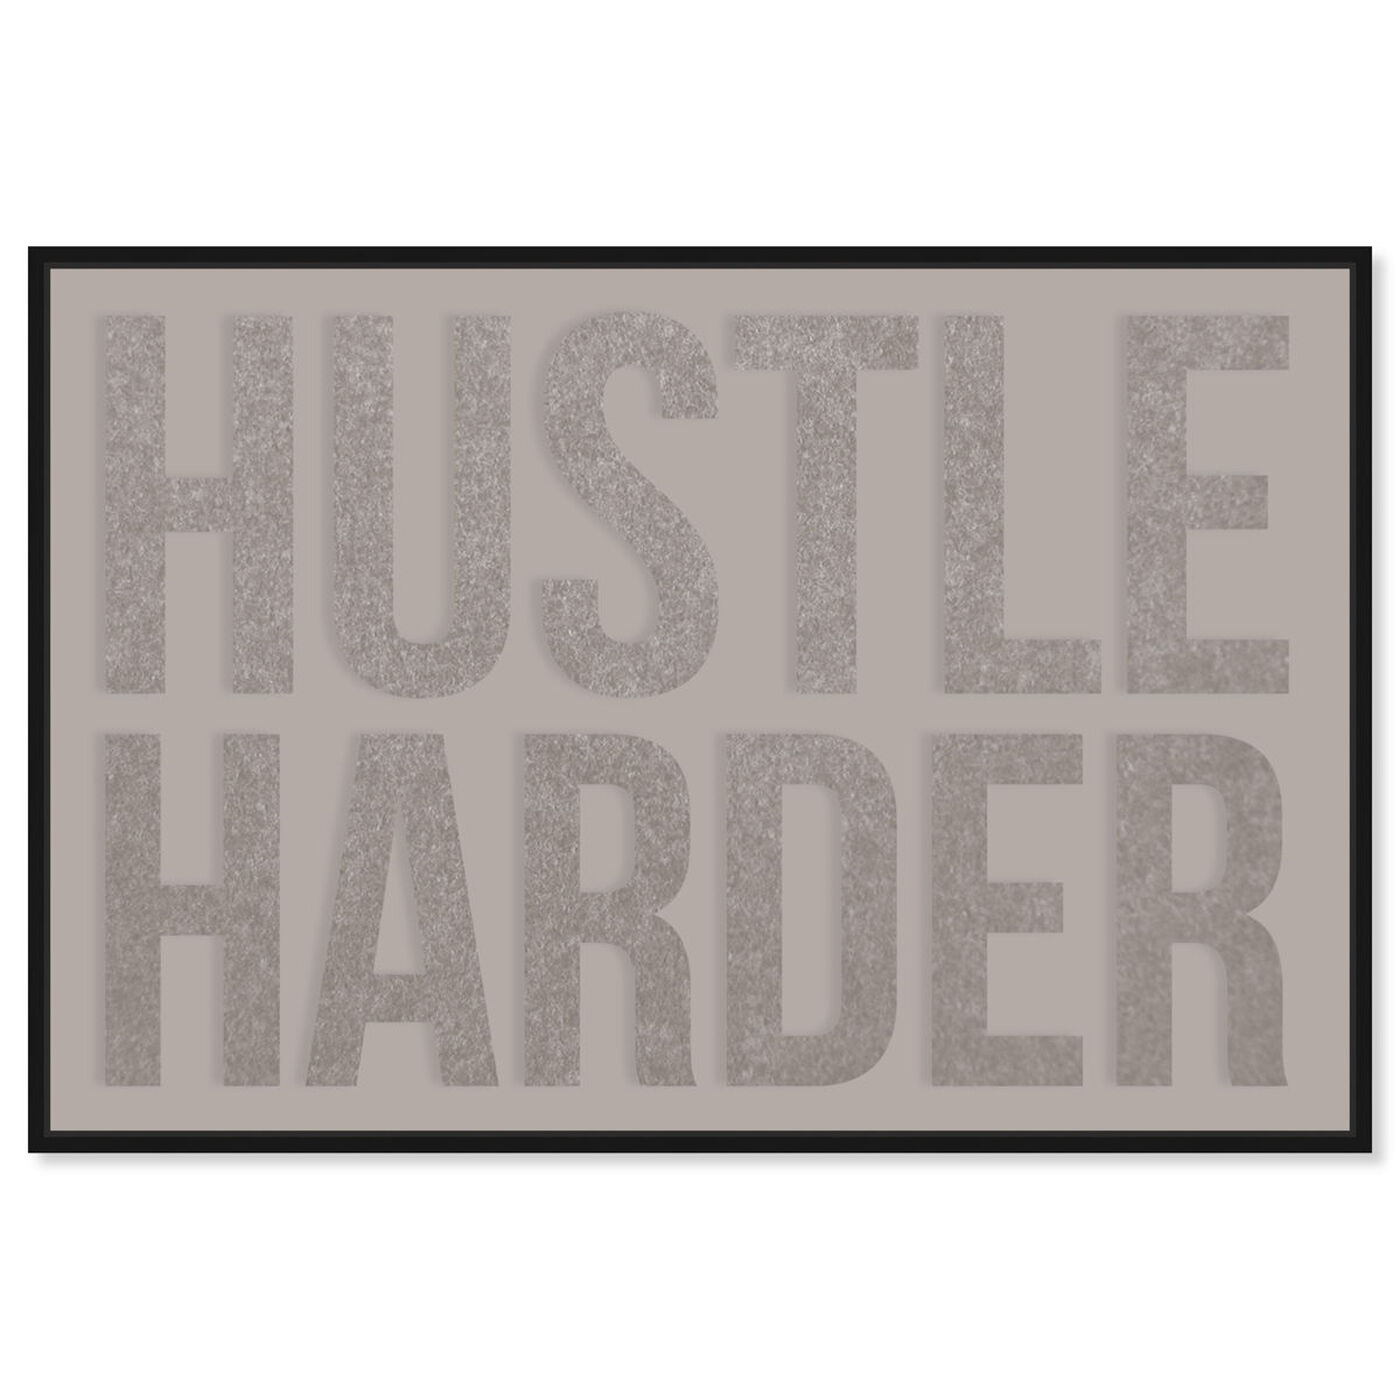 Front view of Hustle Hard featuring typography and quotes and inspirational quotes and sayings art.